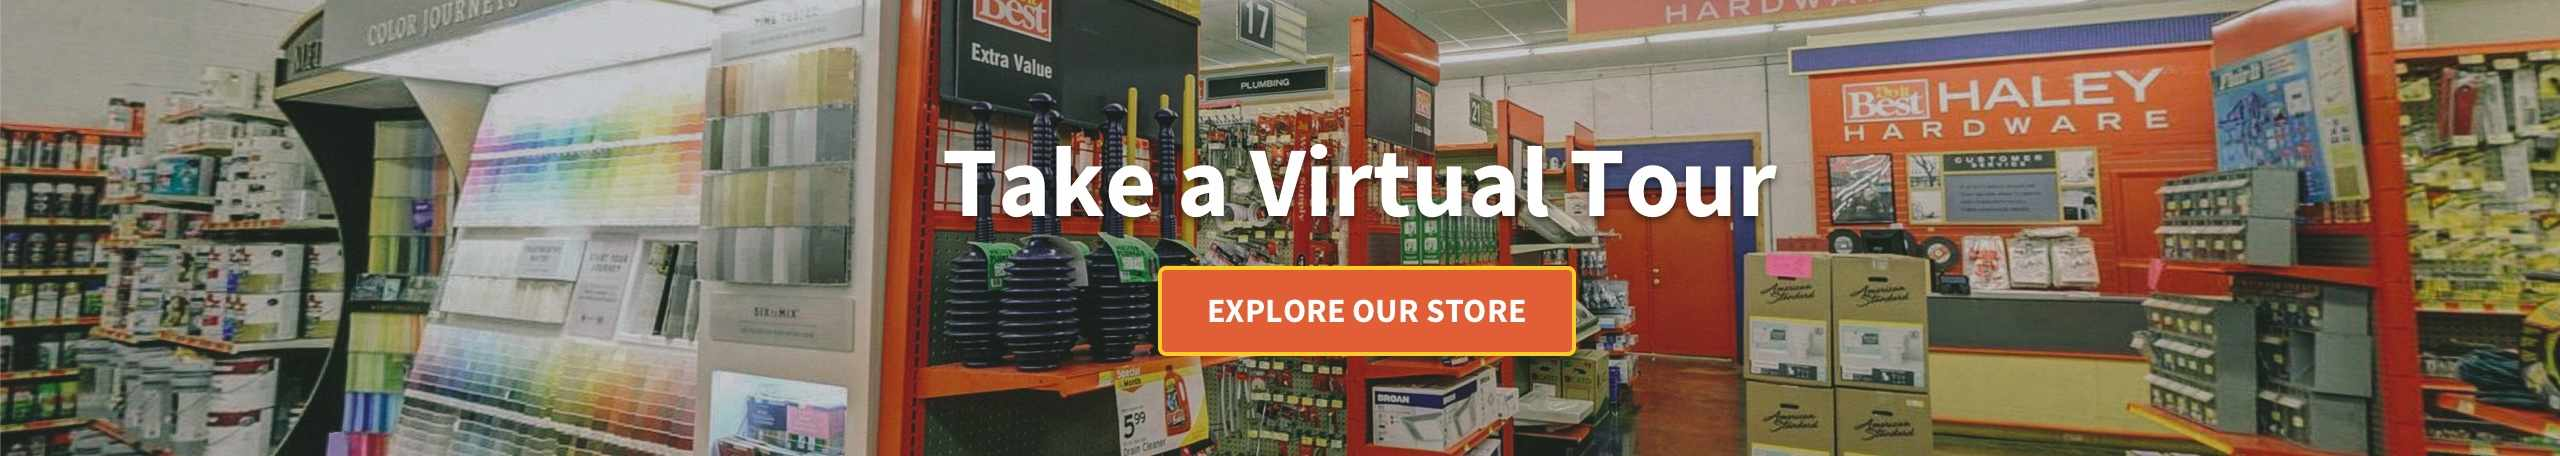 Take a virtual tour - Explore our Store